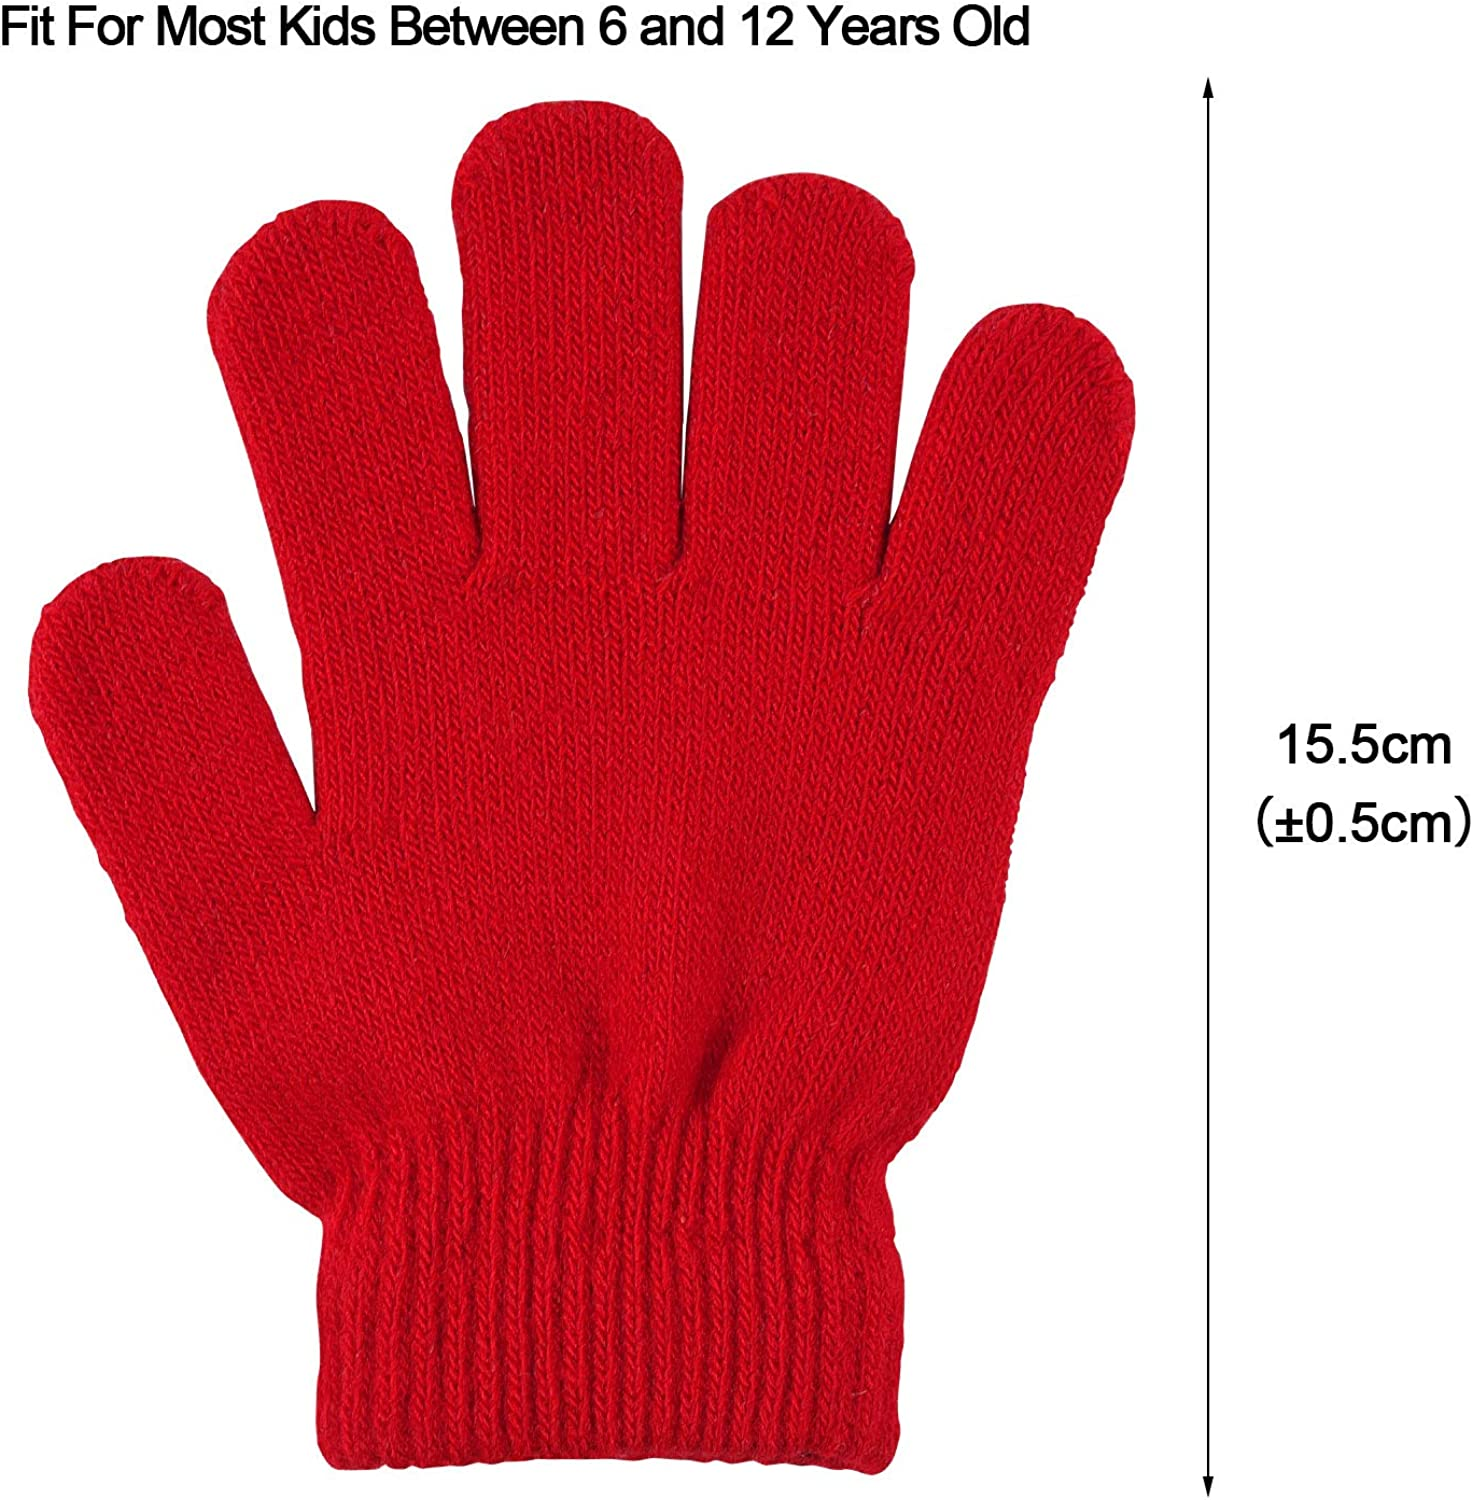 MENOLY 8 Pairs Winter kids Gloves Kids Knit Gloves Warm Stretchy Knitted Magic Gloves for Little Girls Boys Teens